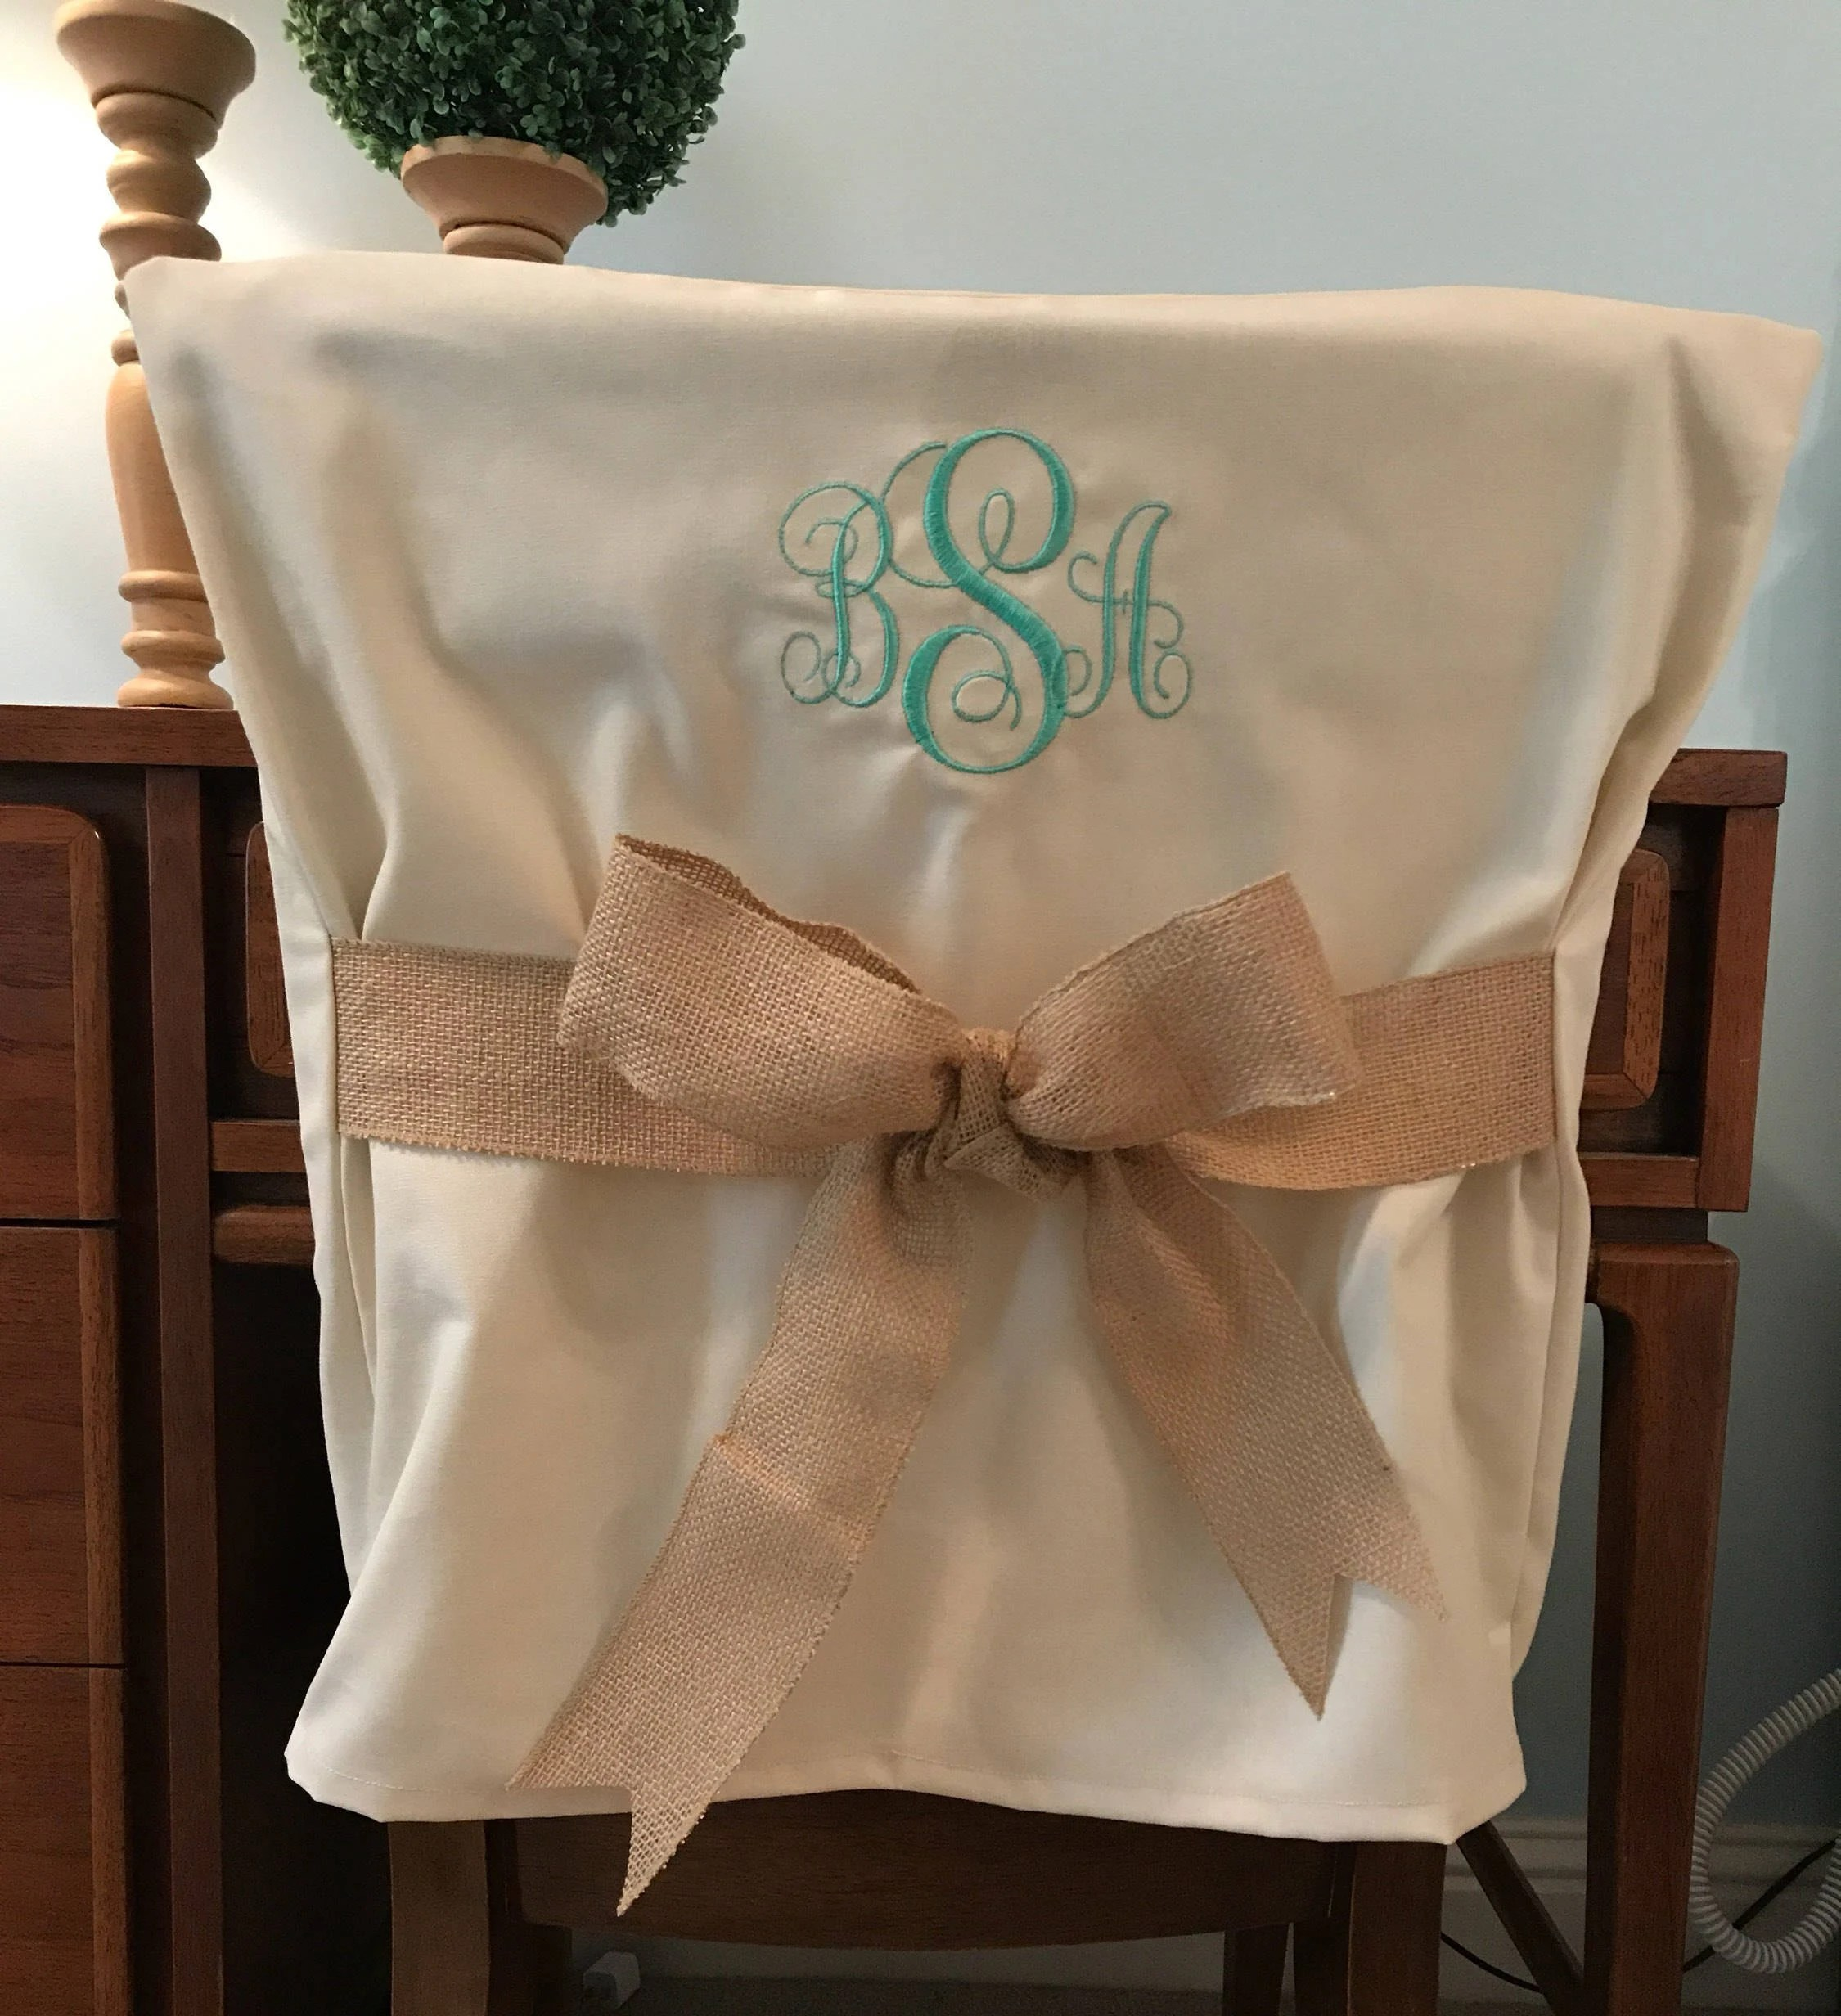 dorm chair covers etsy web lawn chairs desk monogrammed back cover image 0